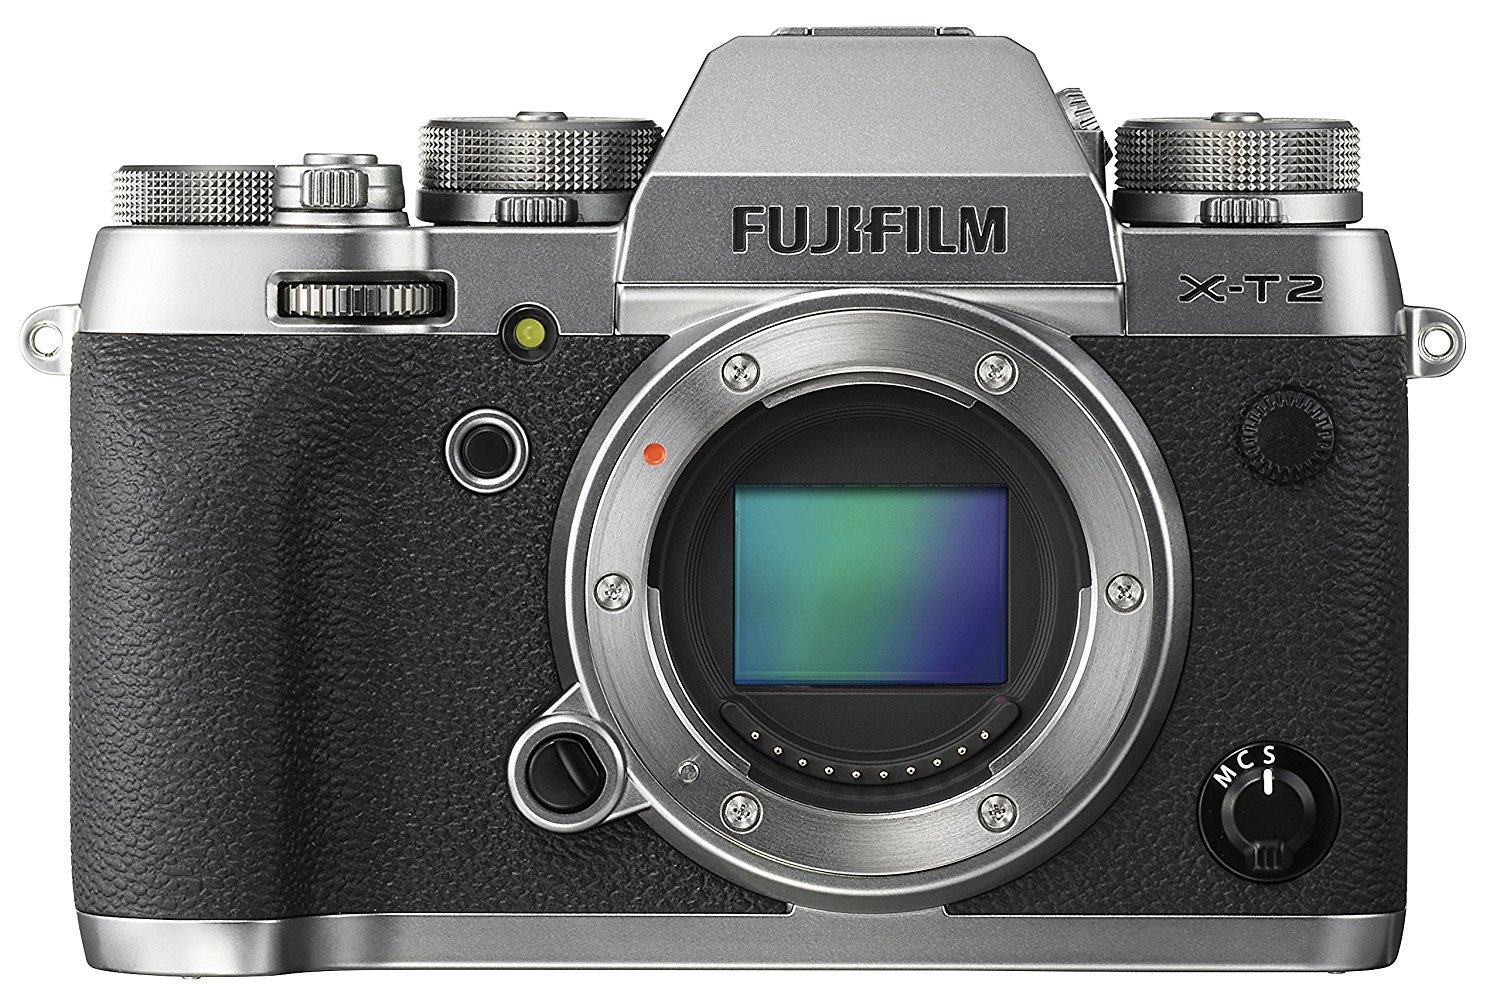 FujiFilm X-T2 - The Best Cameras For Travel Bloggers and Travelers